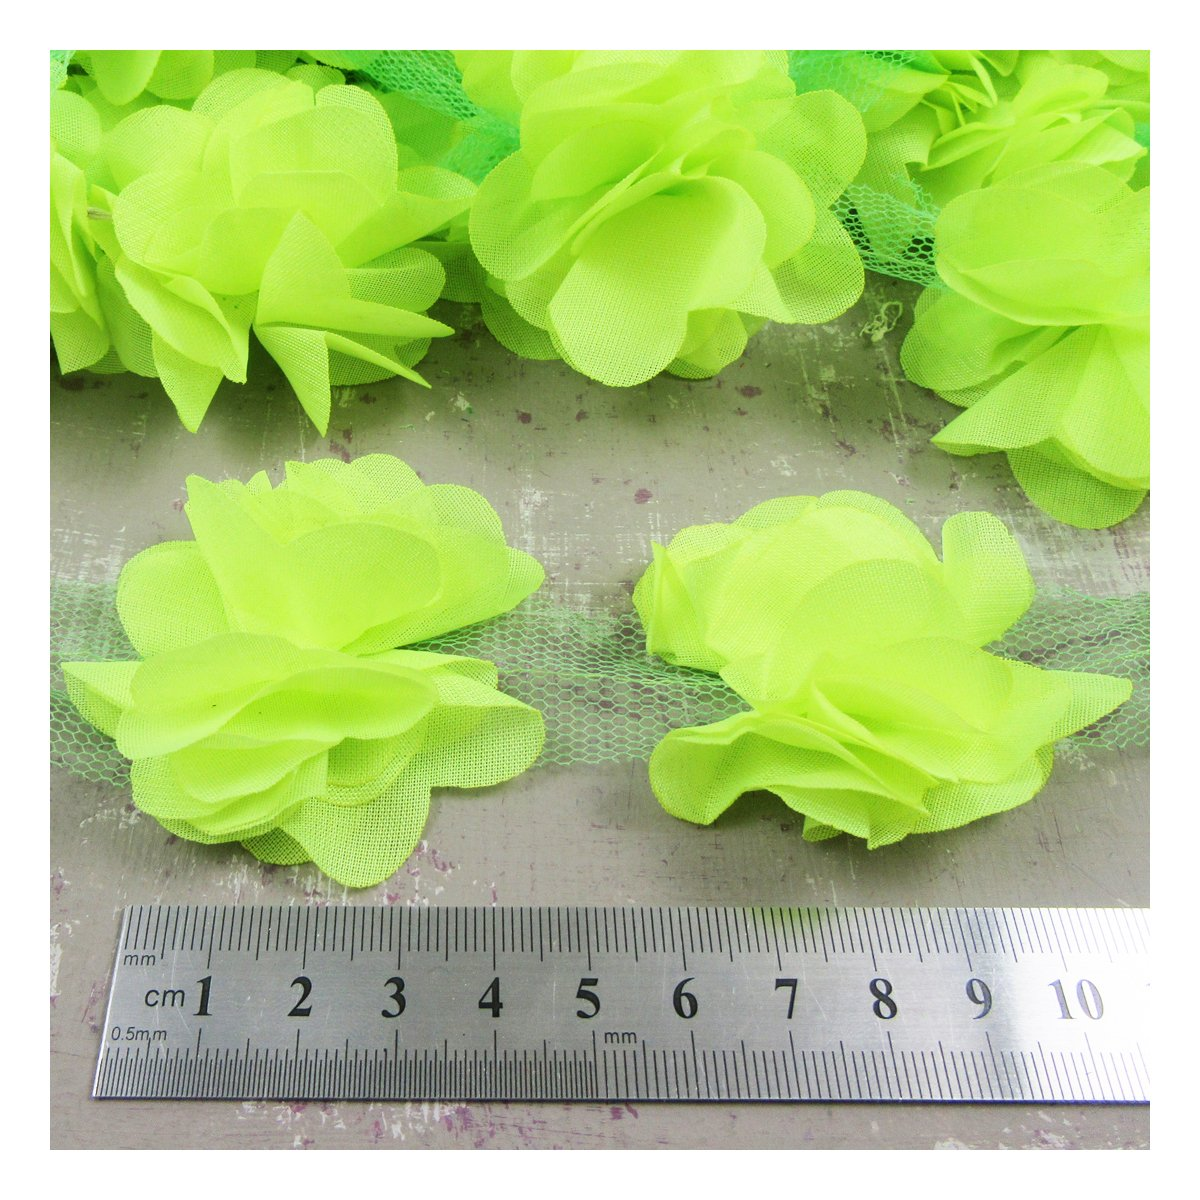 Beads4crafts 1 METRE CHIFFON FLOWER TRIM *23 COLOURS* FABRIC HABERDASHERY CRAFT (Black H2663)